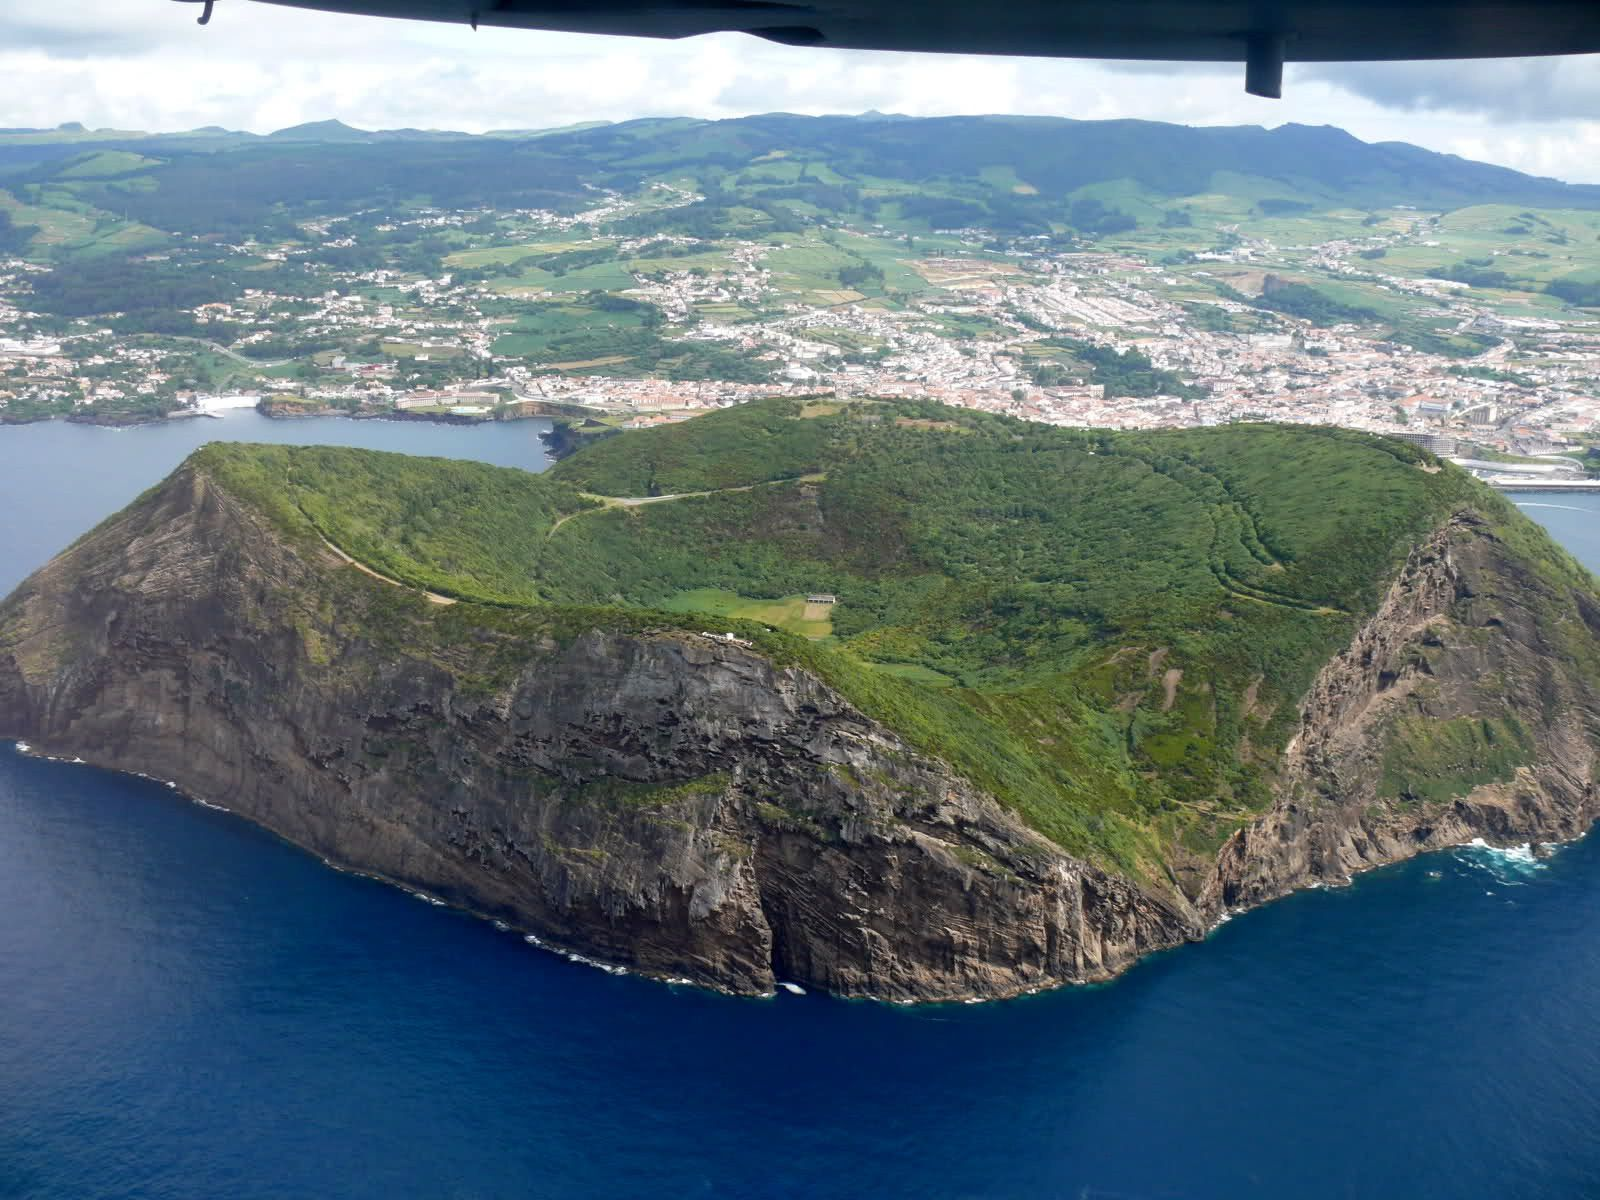 Terceira / Azores - Monte Brasil - photo audioanalogicodeportugal.